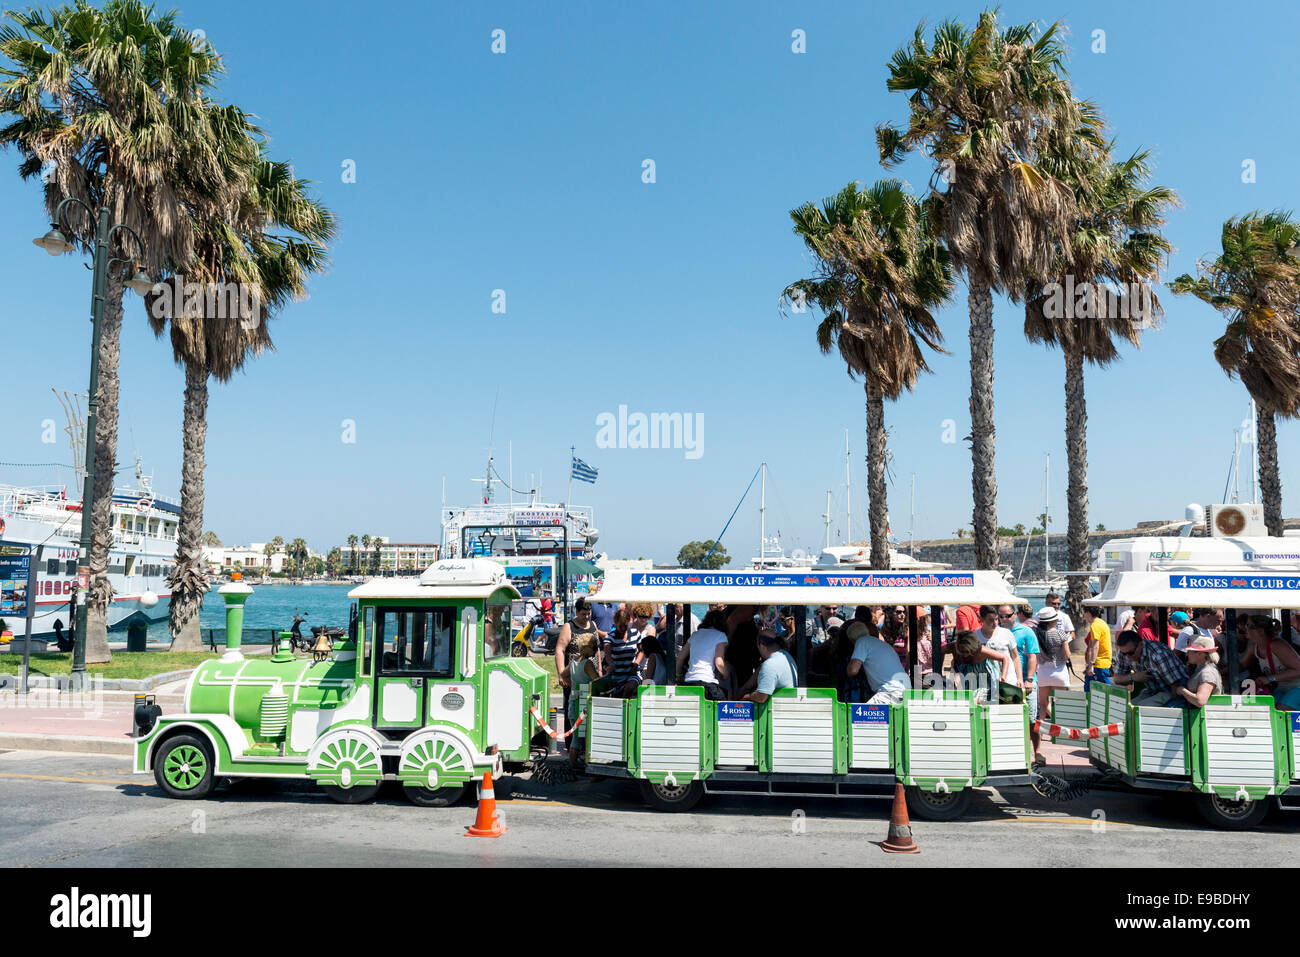 Road train in the town of Kos, island of Kos, Greece - Stock Image